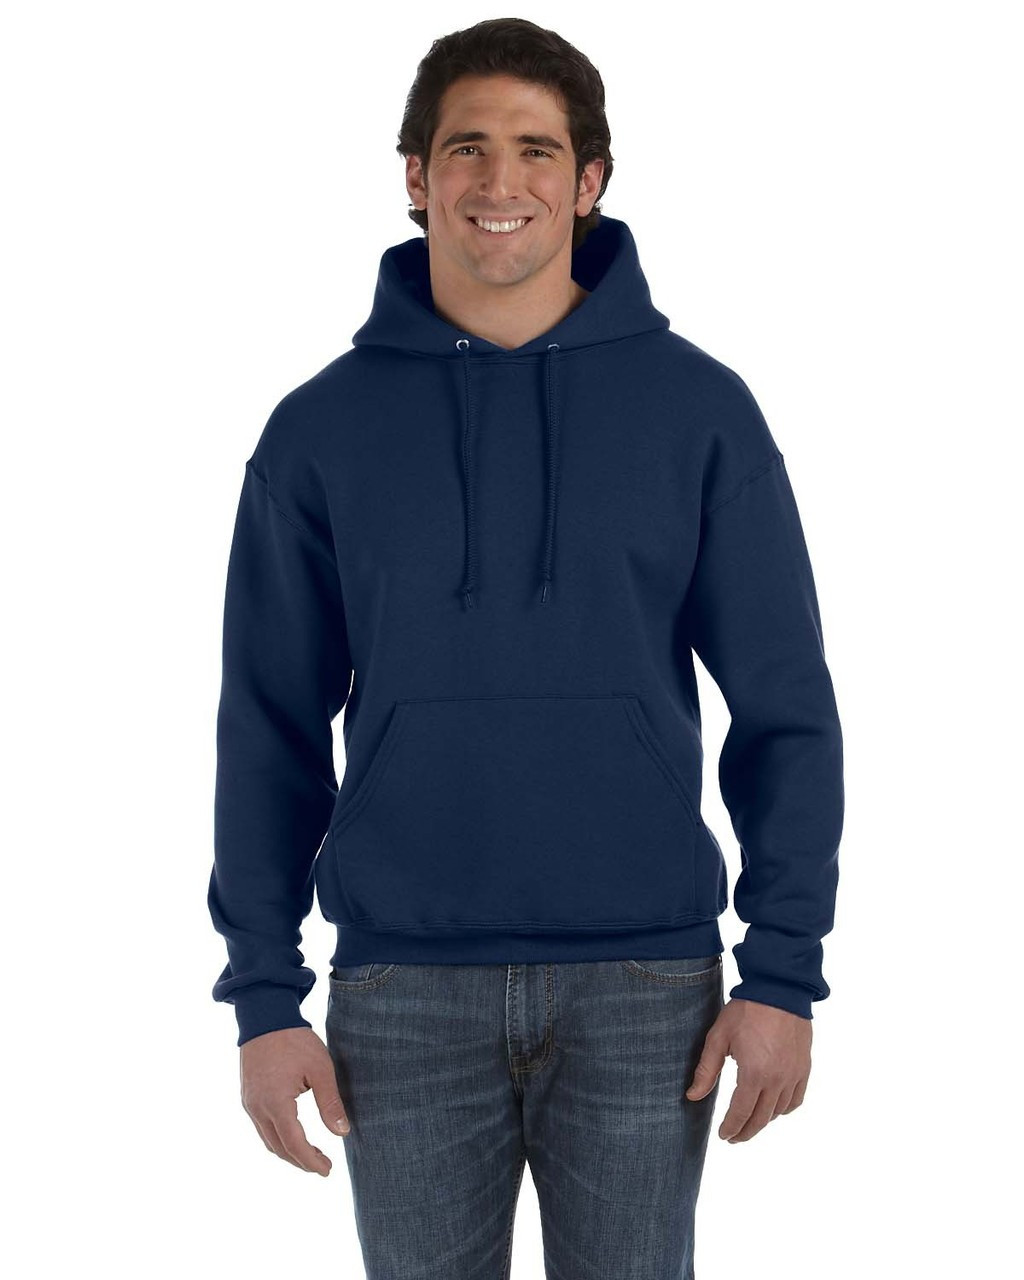 J. Navy - 82130 Fruit of the Loom Supercotton™ Pullover Hoodie | Blankclothing.ca